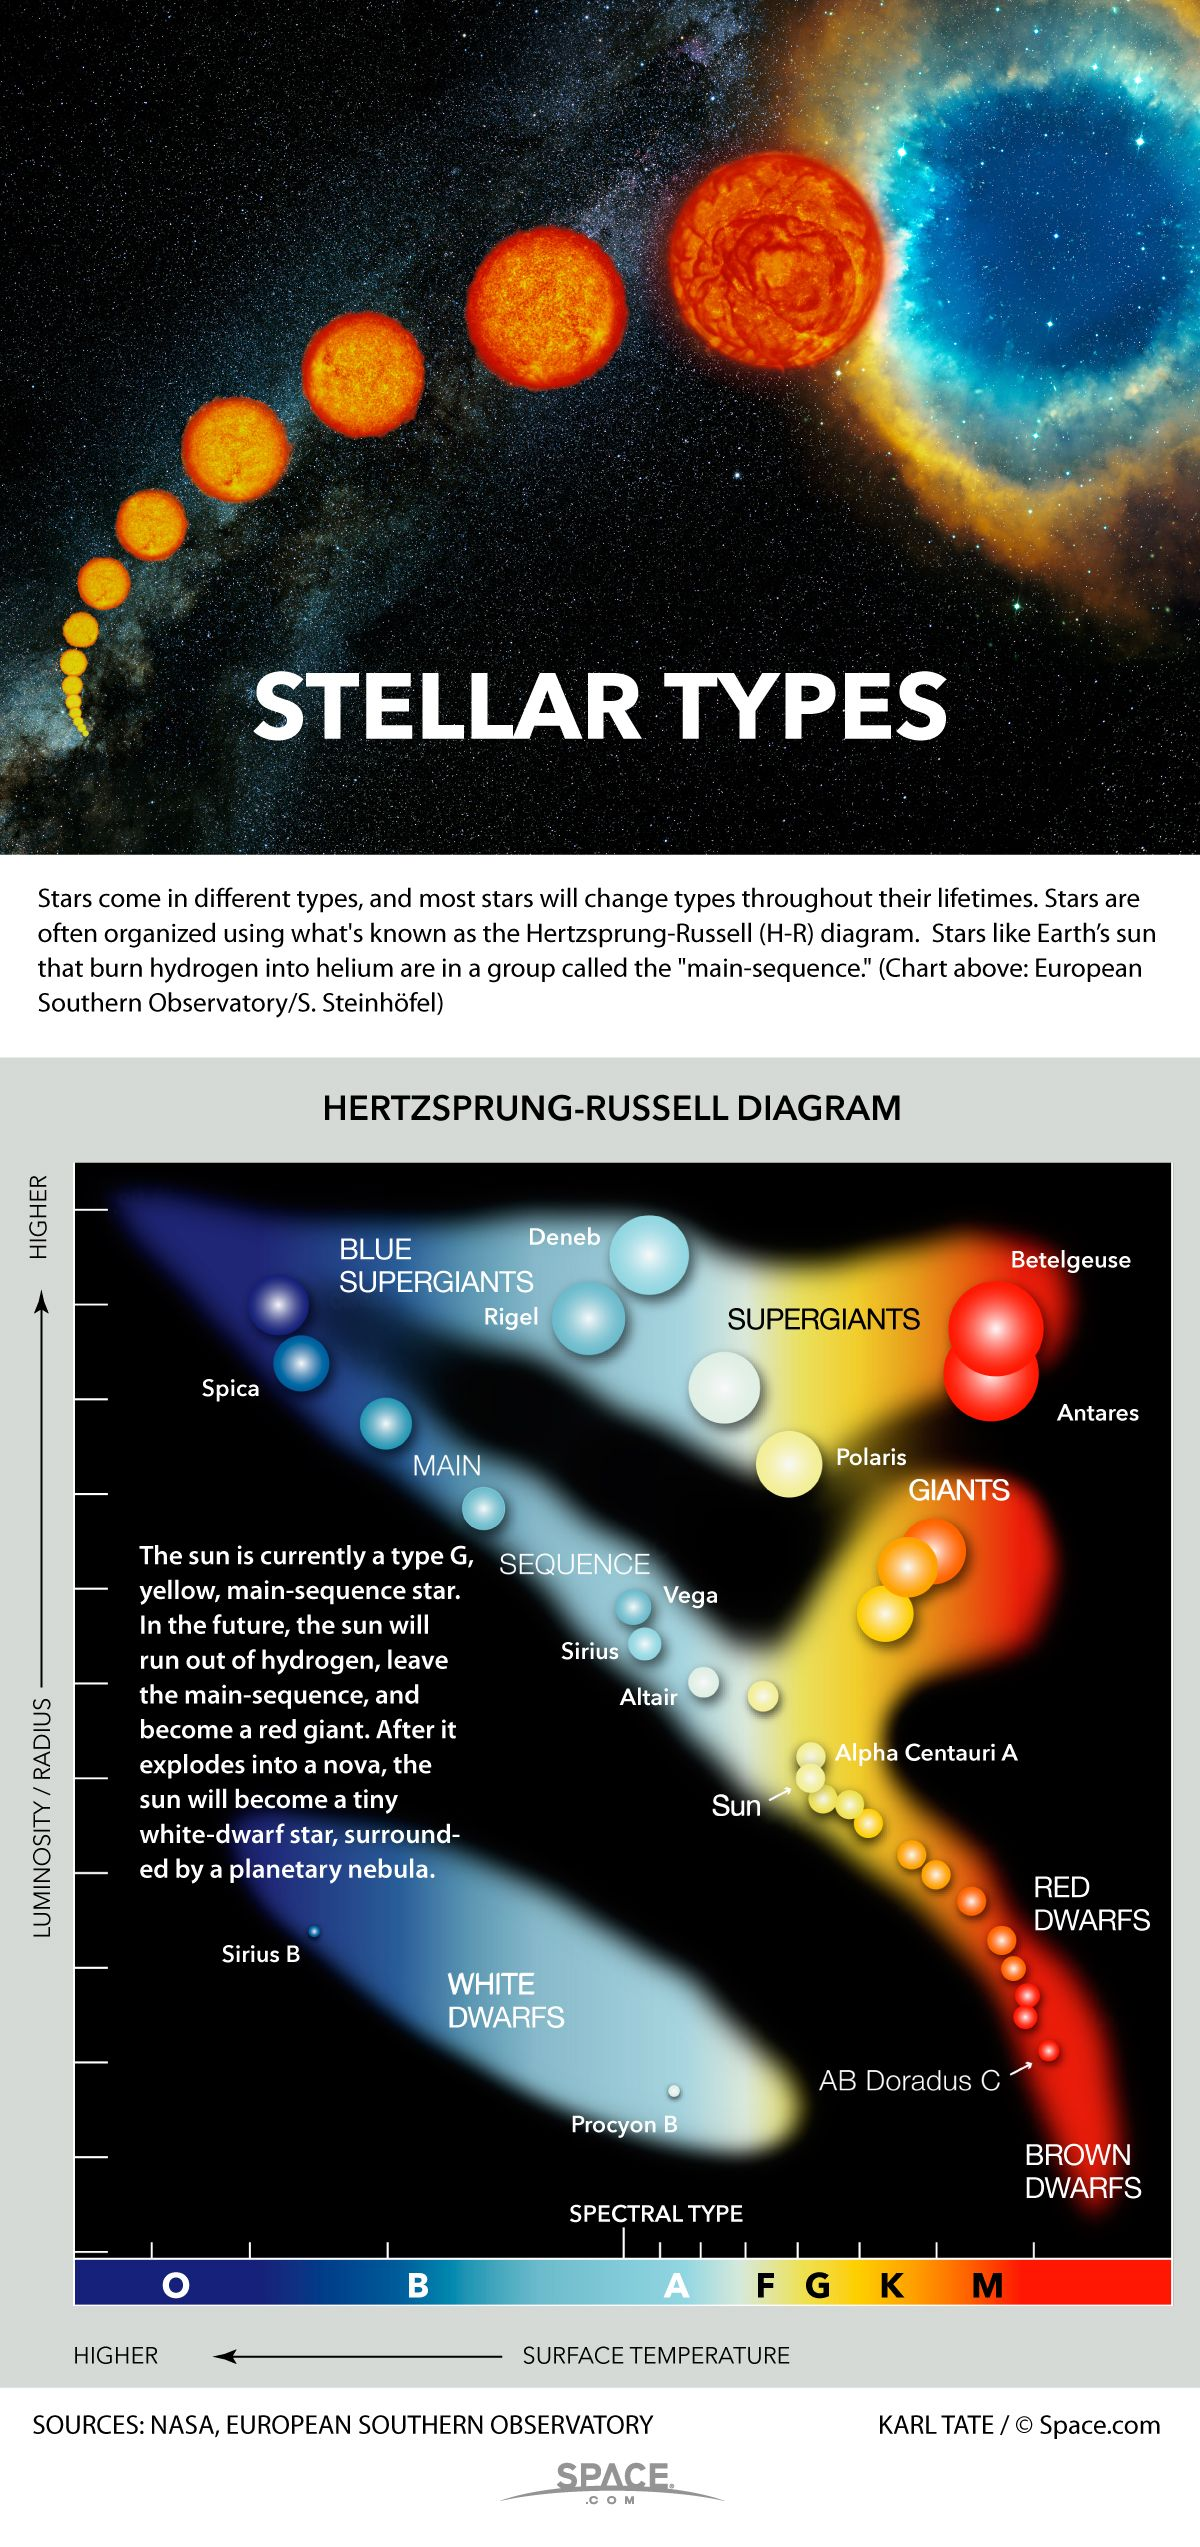 How To Tell Star Types Apart Infographic By Karl Tate Infographics Artist Astronomers Group Stars Into Classes According Spectral Color And